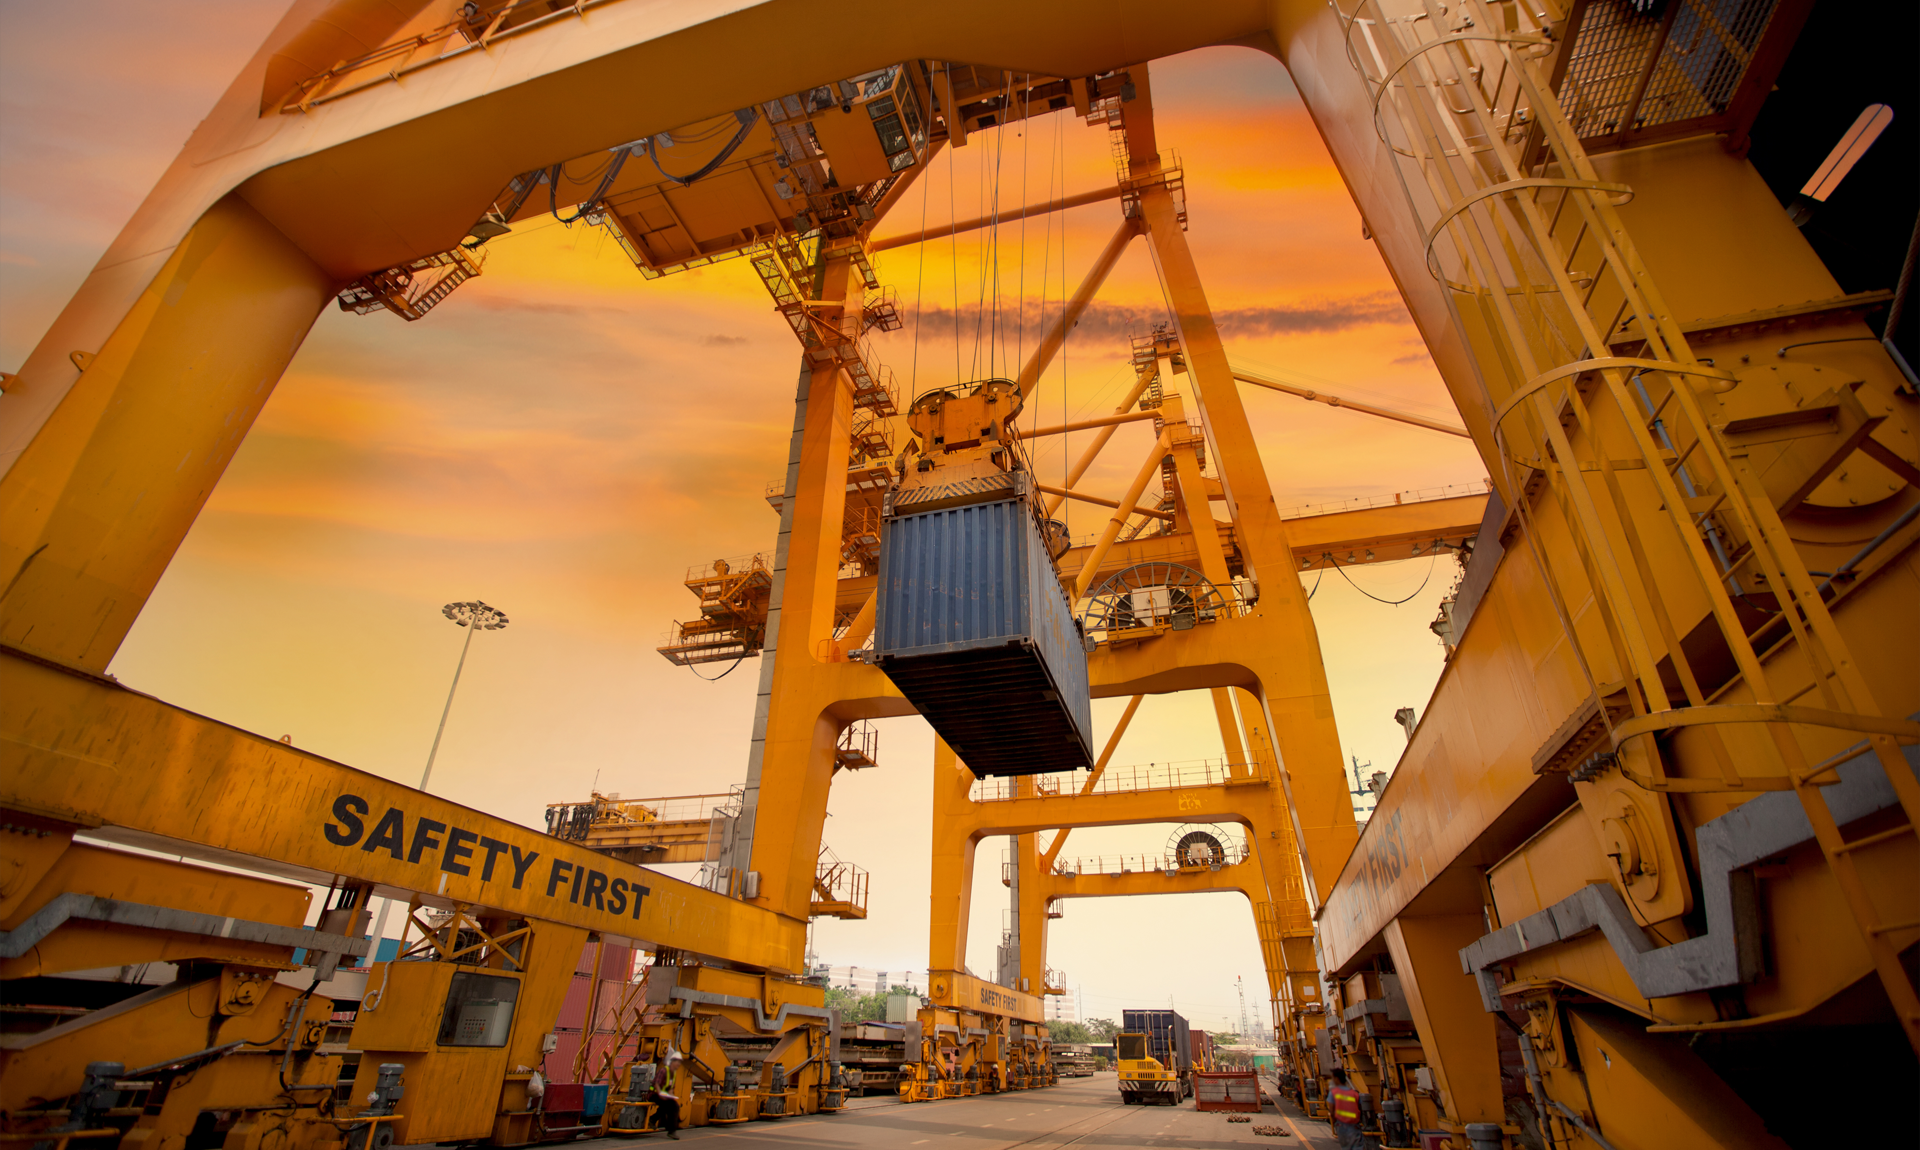 Supply chian management in 2021: image of containers in an harbour